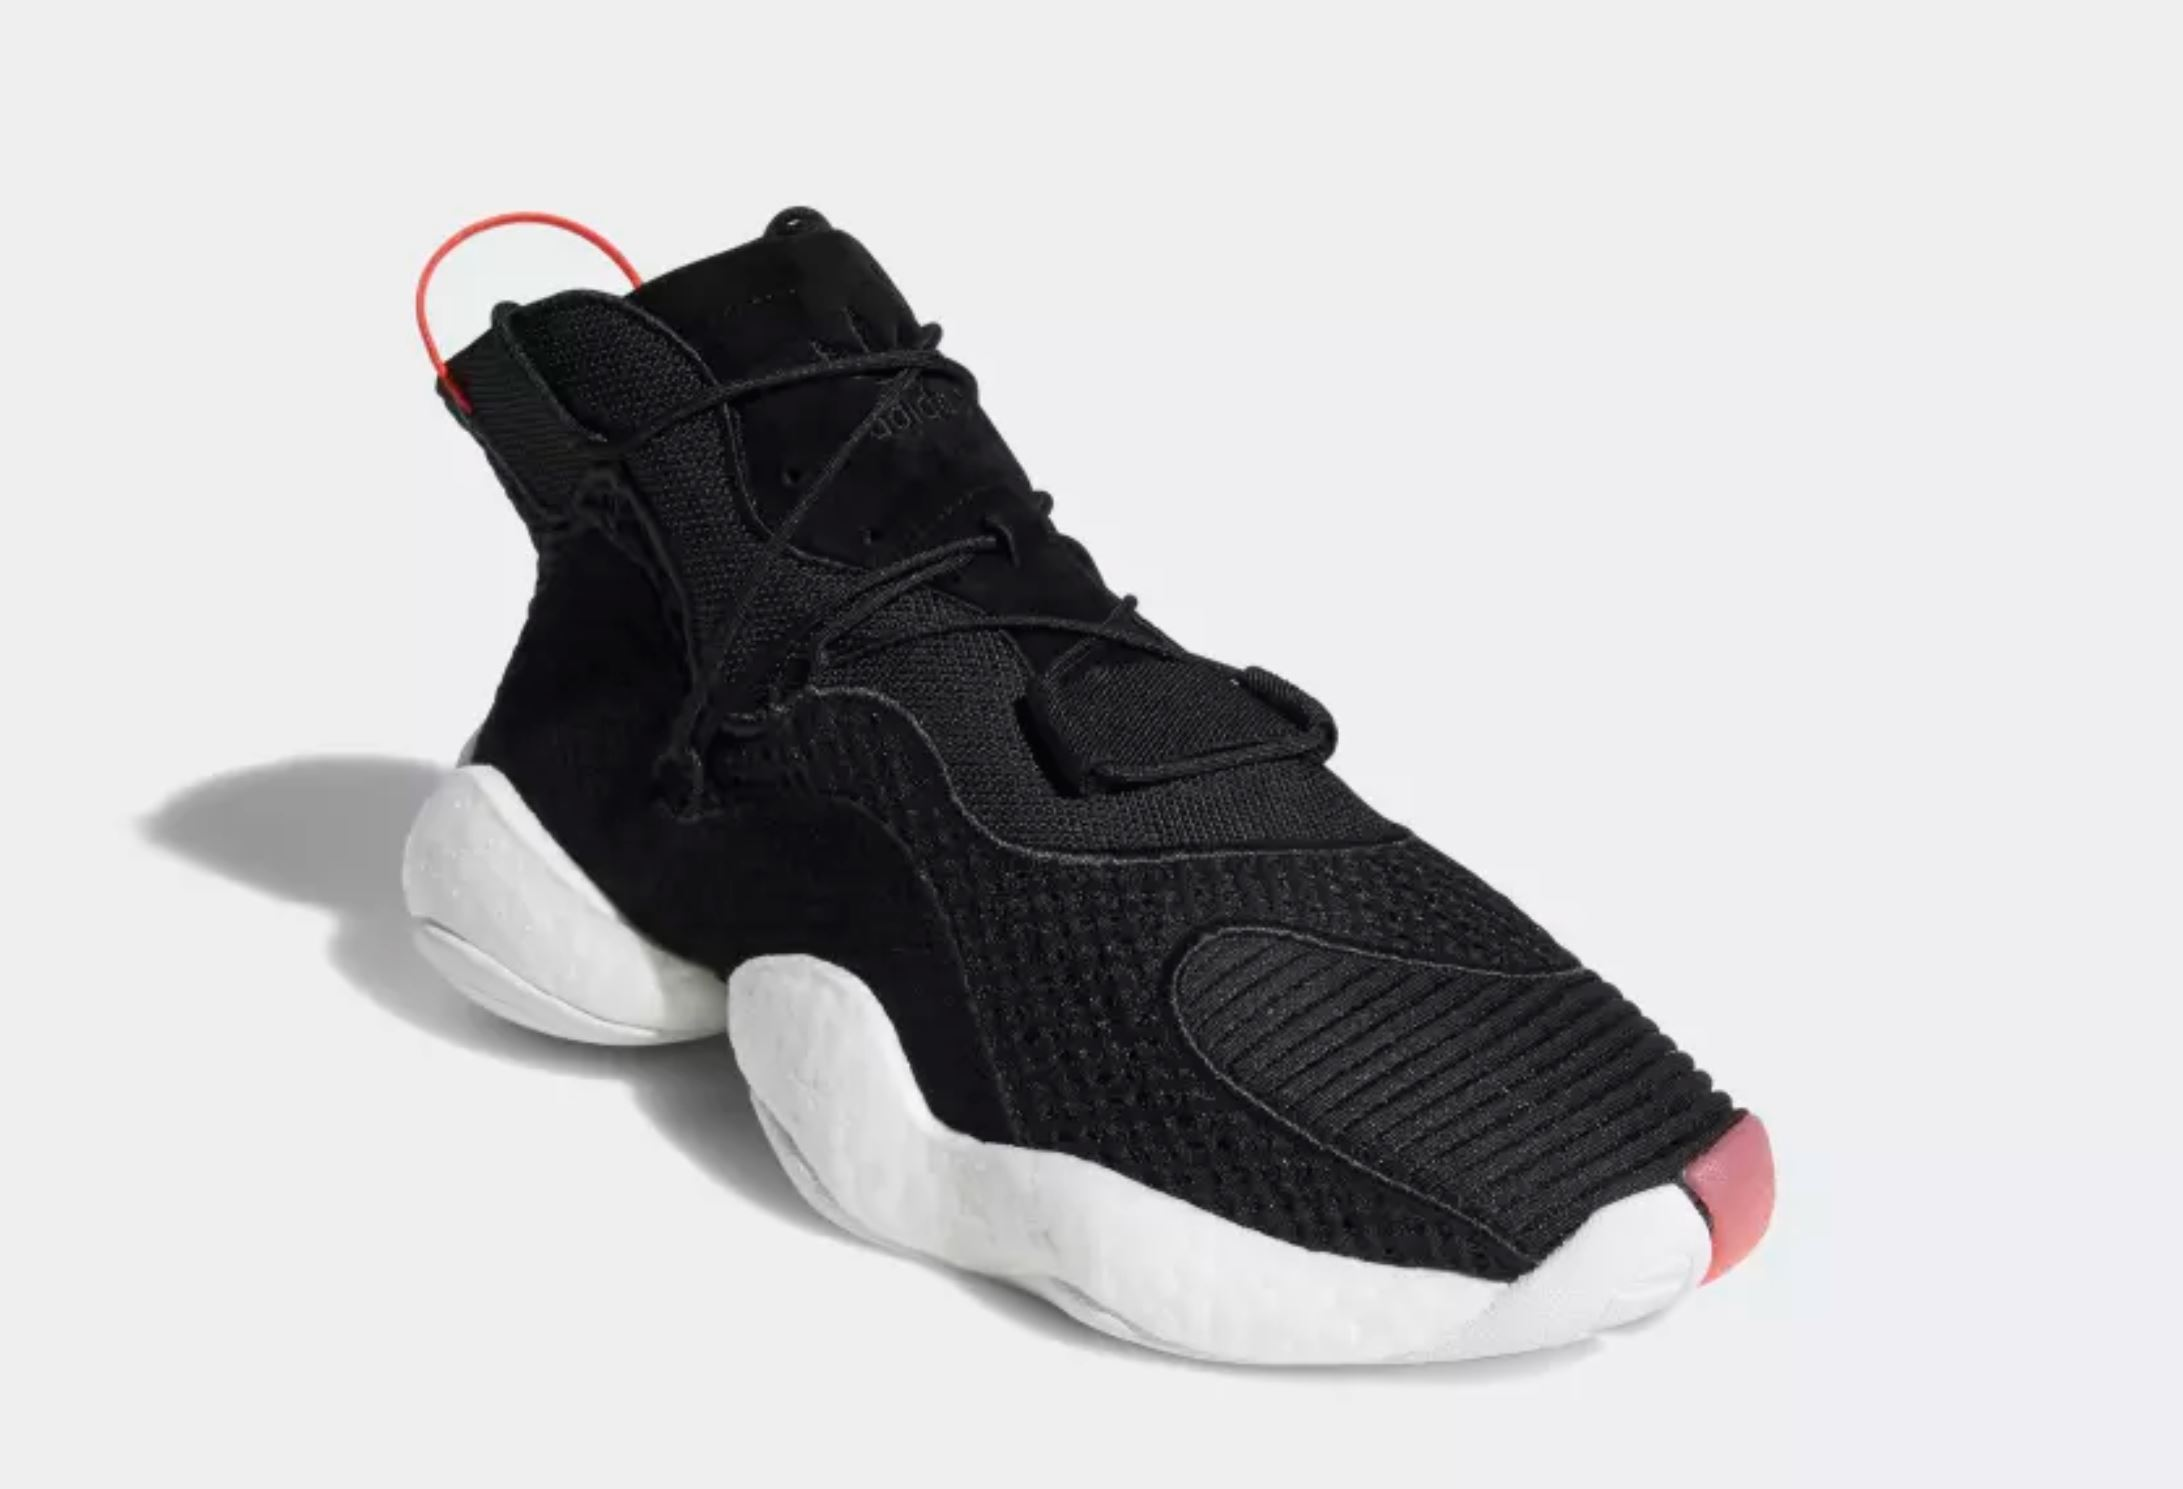 adidas crazy BYW black red 3